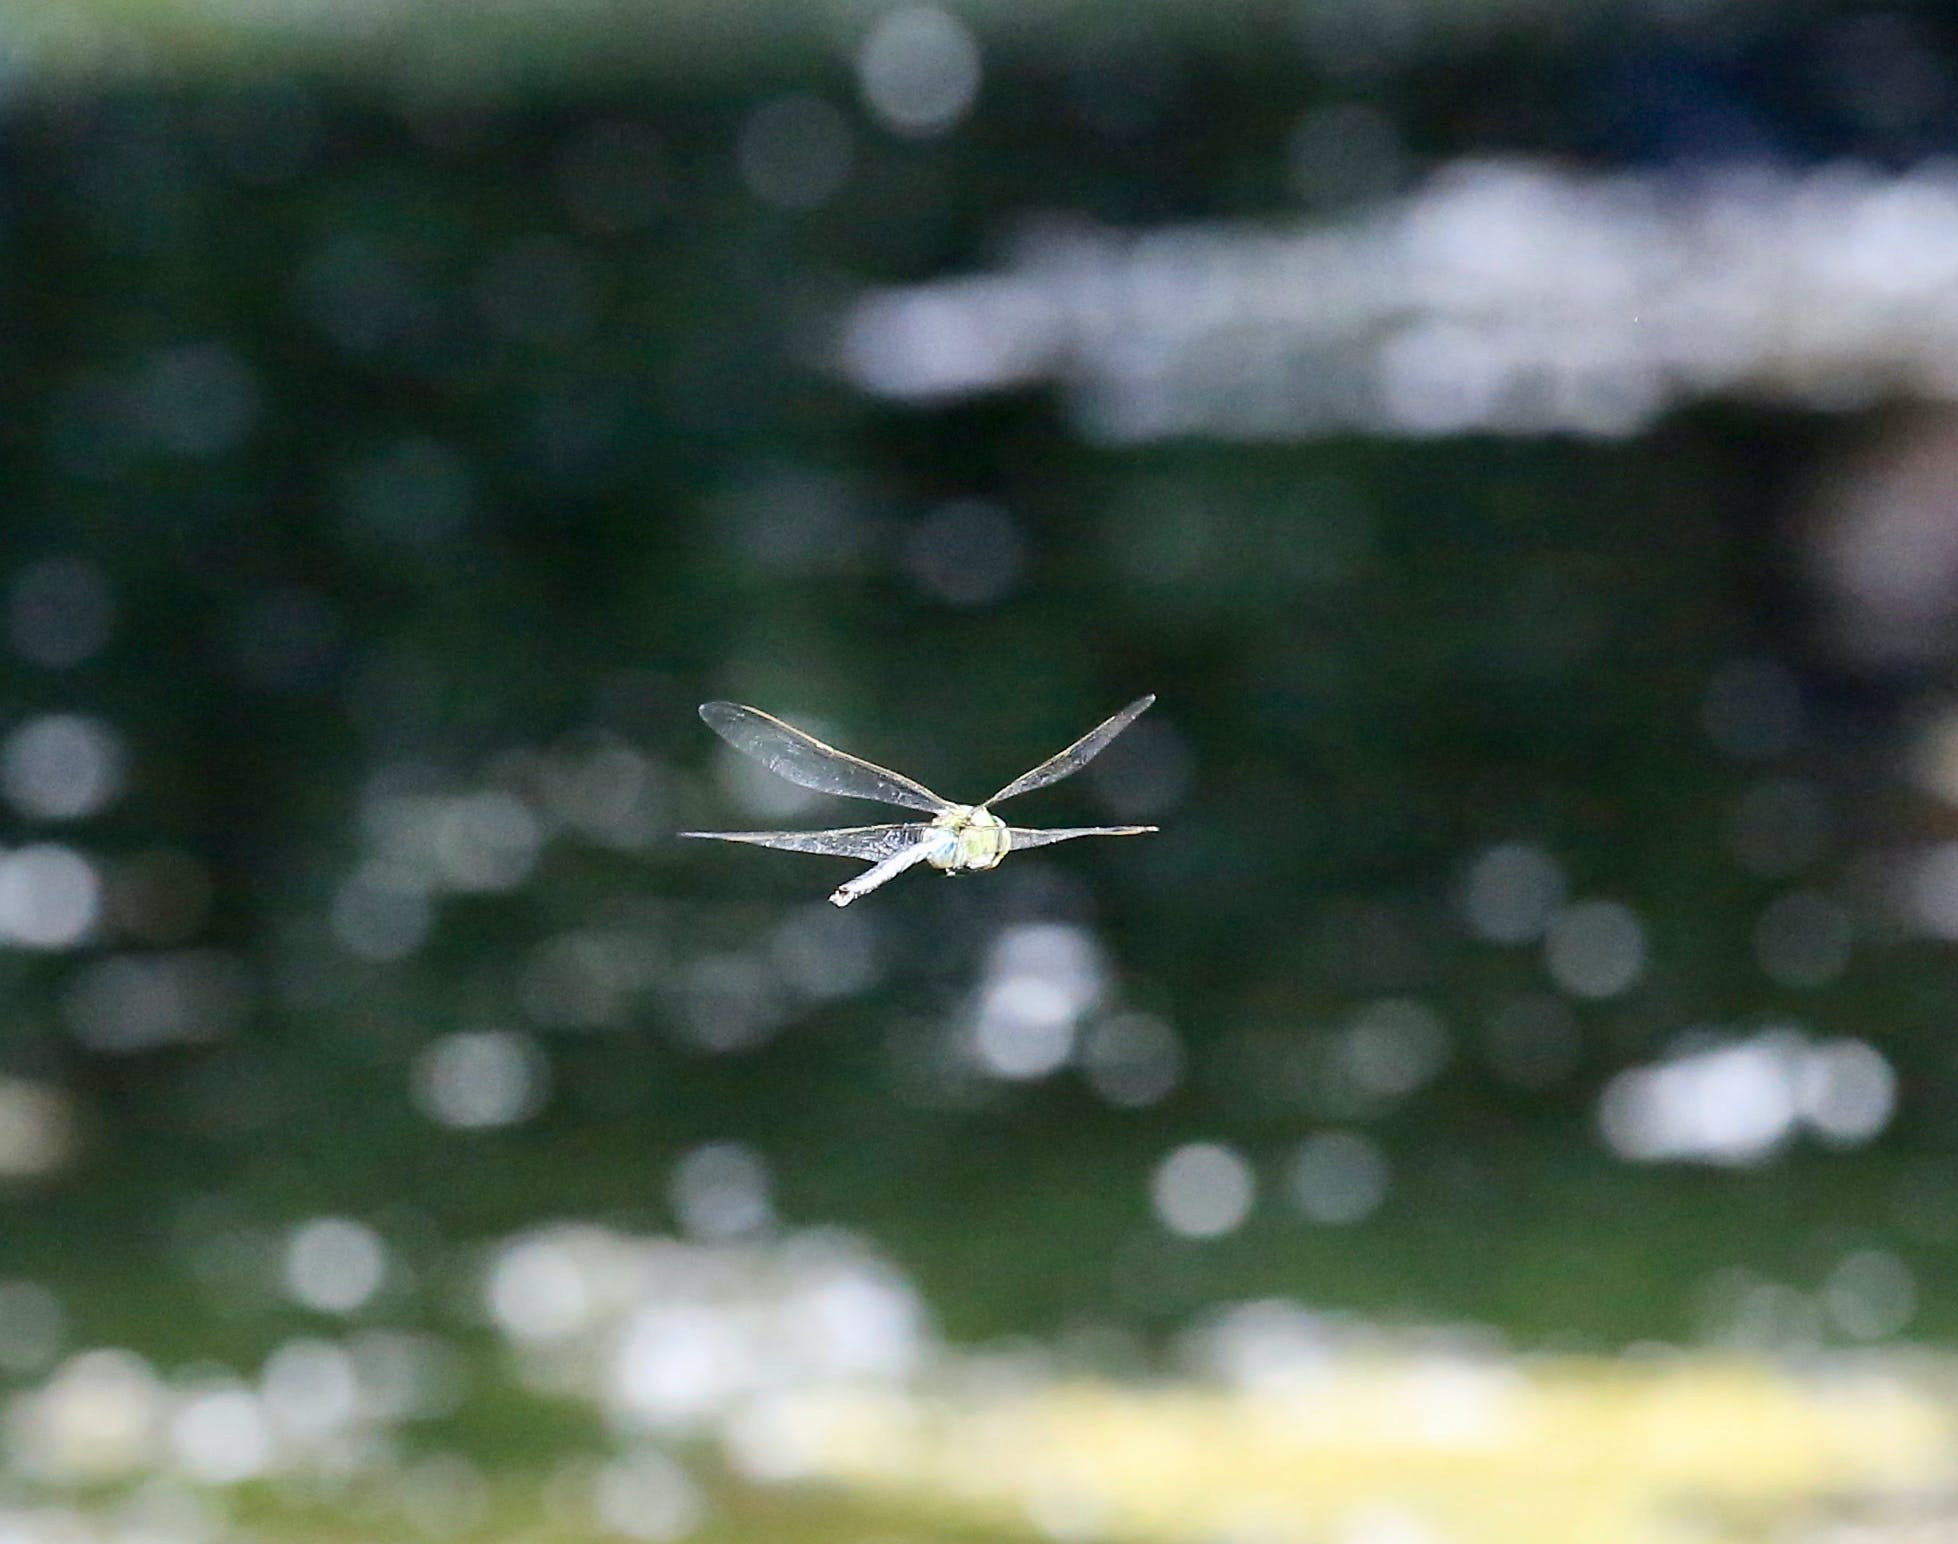 Free stock photo of animal, dragonflies, insect, fly